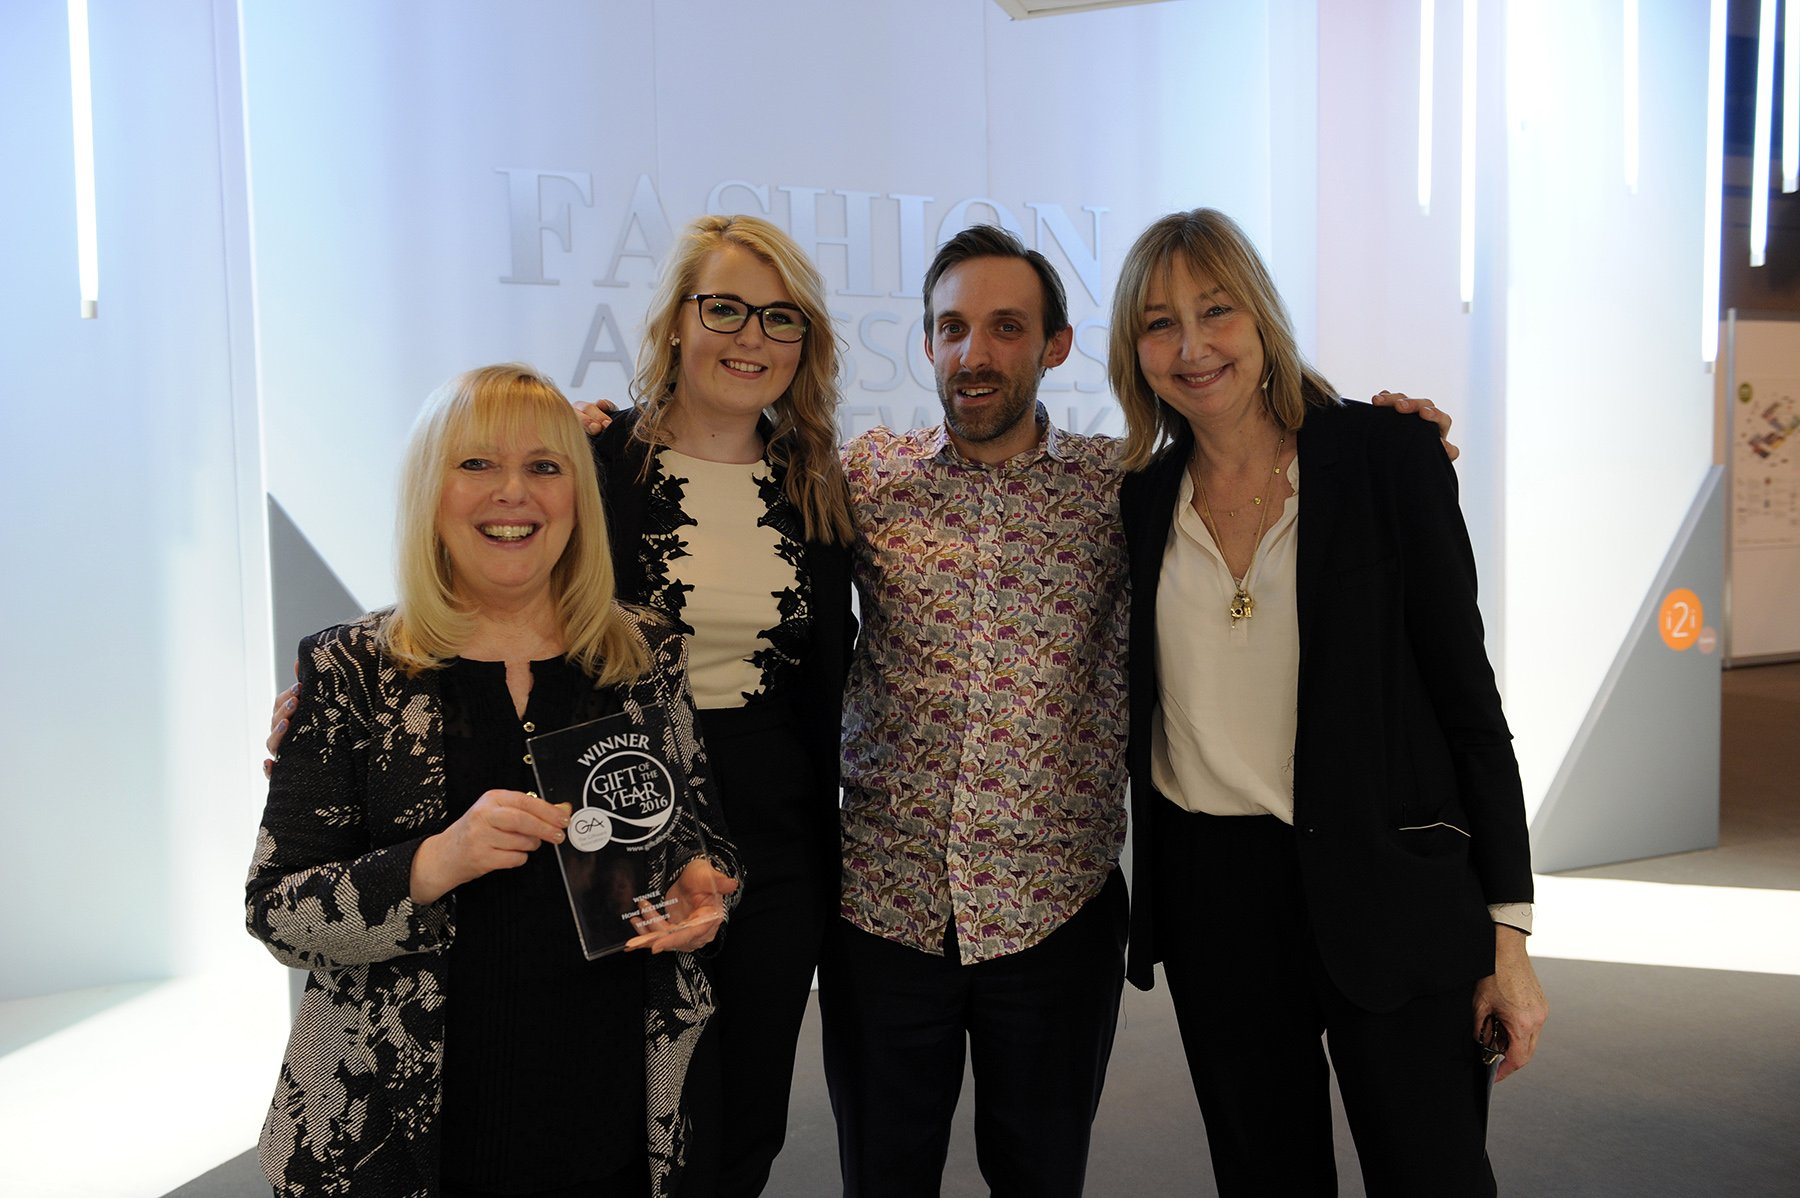 18 Myself with artist Katherine Williams, being presented with Gift of the Year 2016 award by Cath Kidston (right)